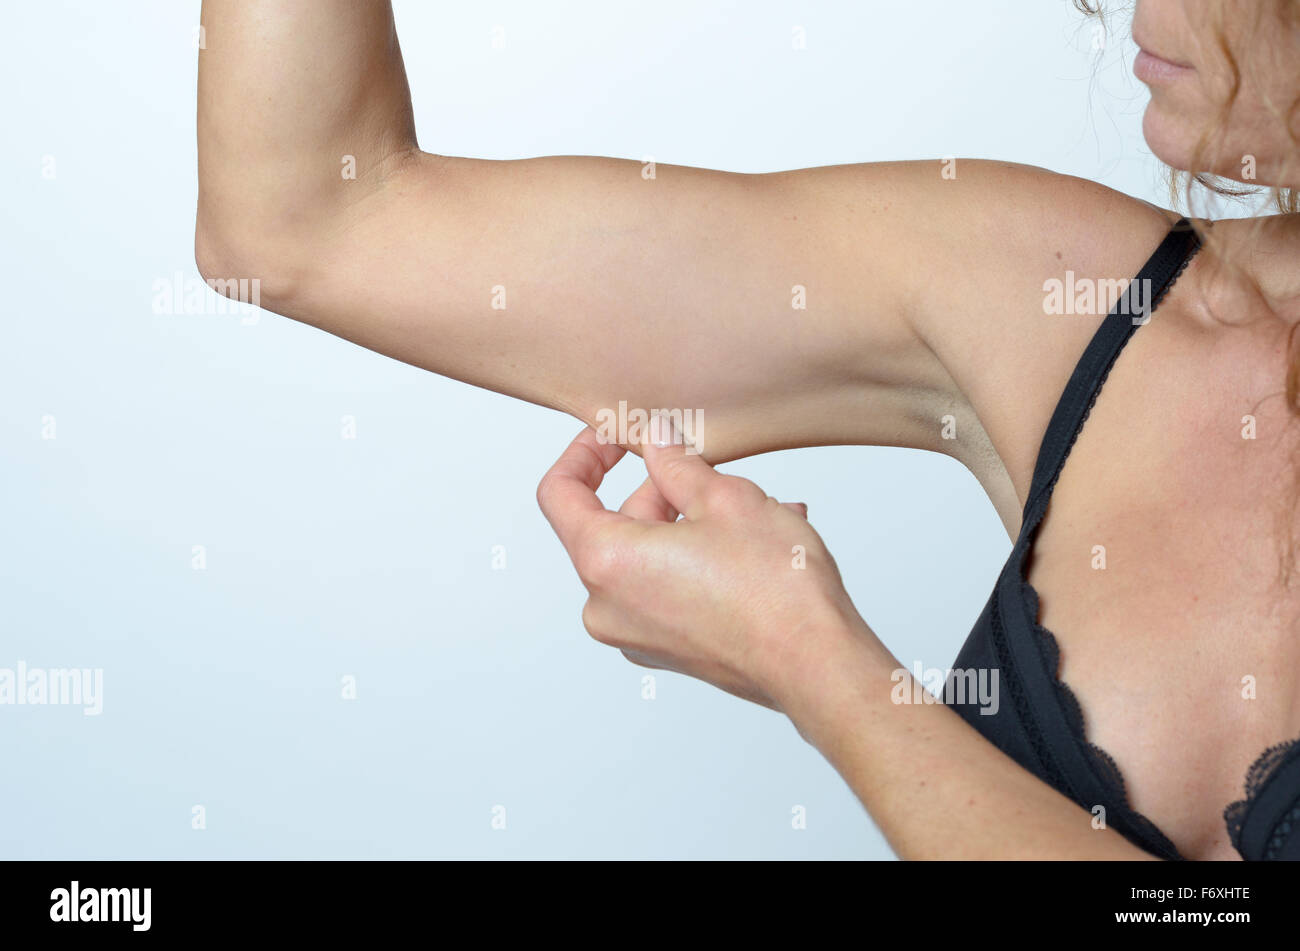 Middle aged woman displaying the loose skin or flab due to ageing on her upper arm pinching it between her fingers, - Stock Image